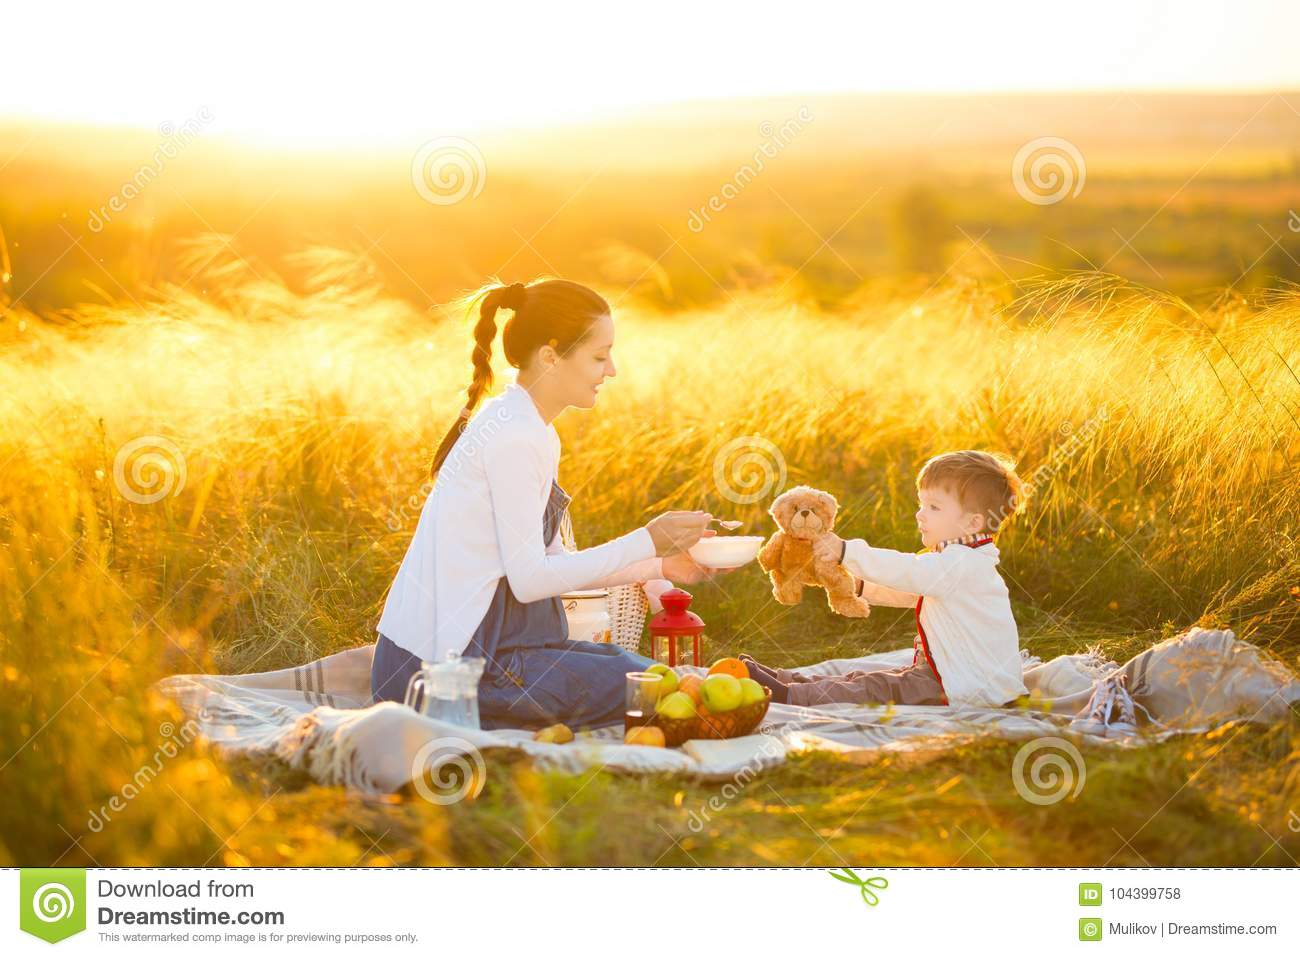 Cute mom and little son playing with my teddy. Mother and son feeding teddy bear on a picnic